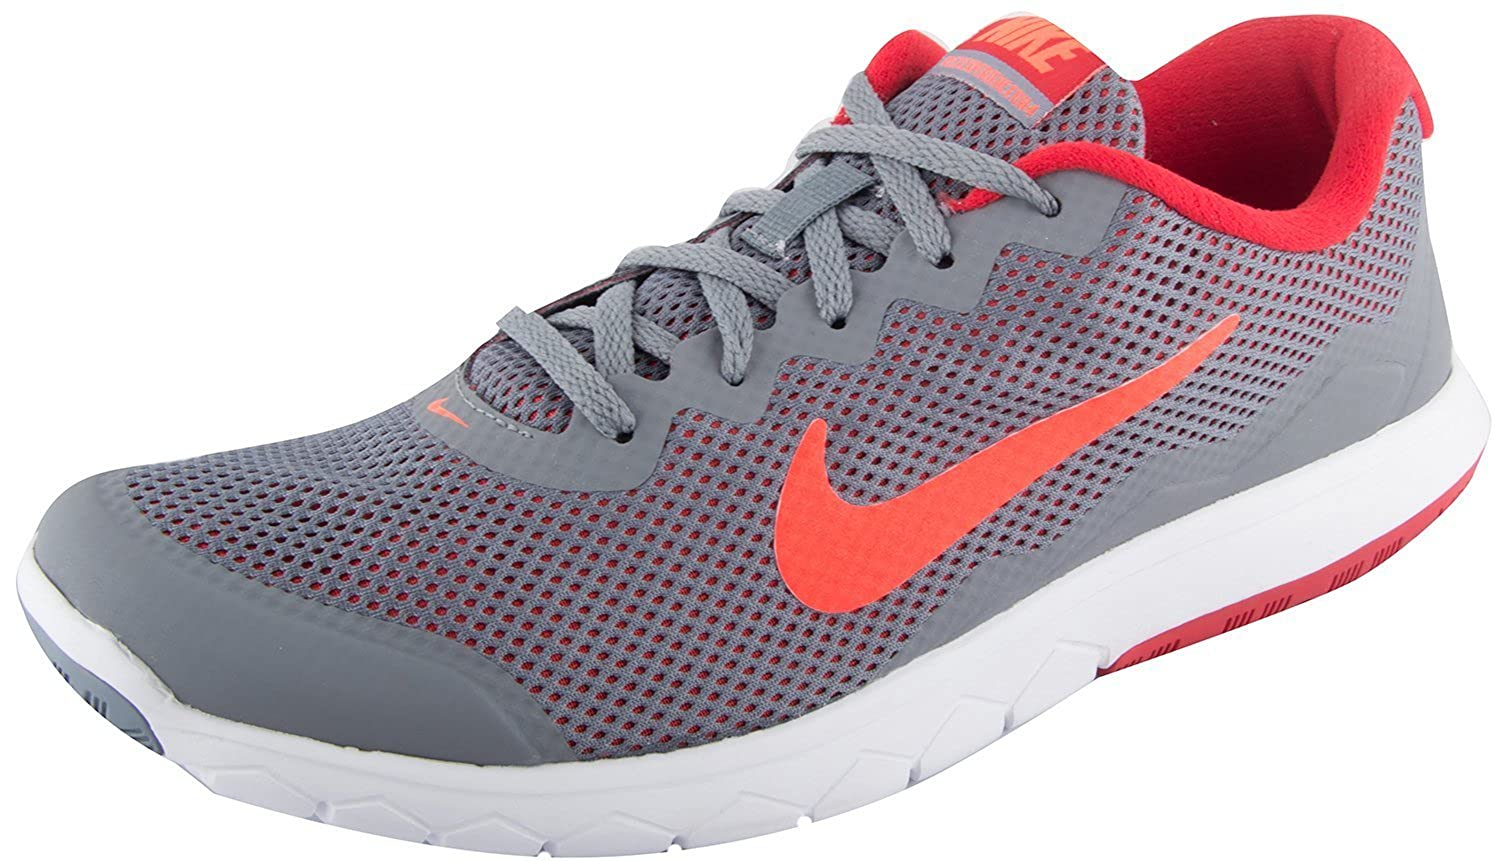 e745f4355878 Nike Men s Flex Experience Rn 4 Cl Gry Ured Running Shoes-6 UK India (40  EU)(7 US) (749172-013)  Buy Online at Low Prices in India - Amazon.in